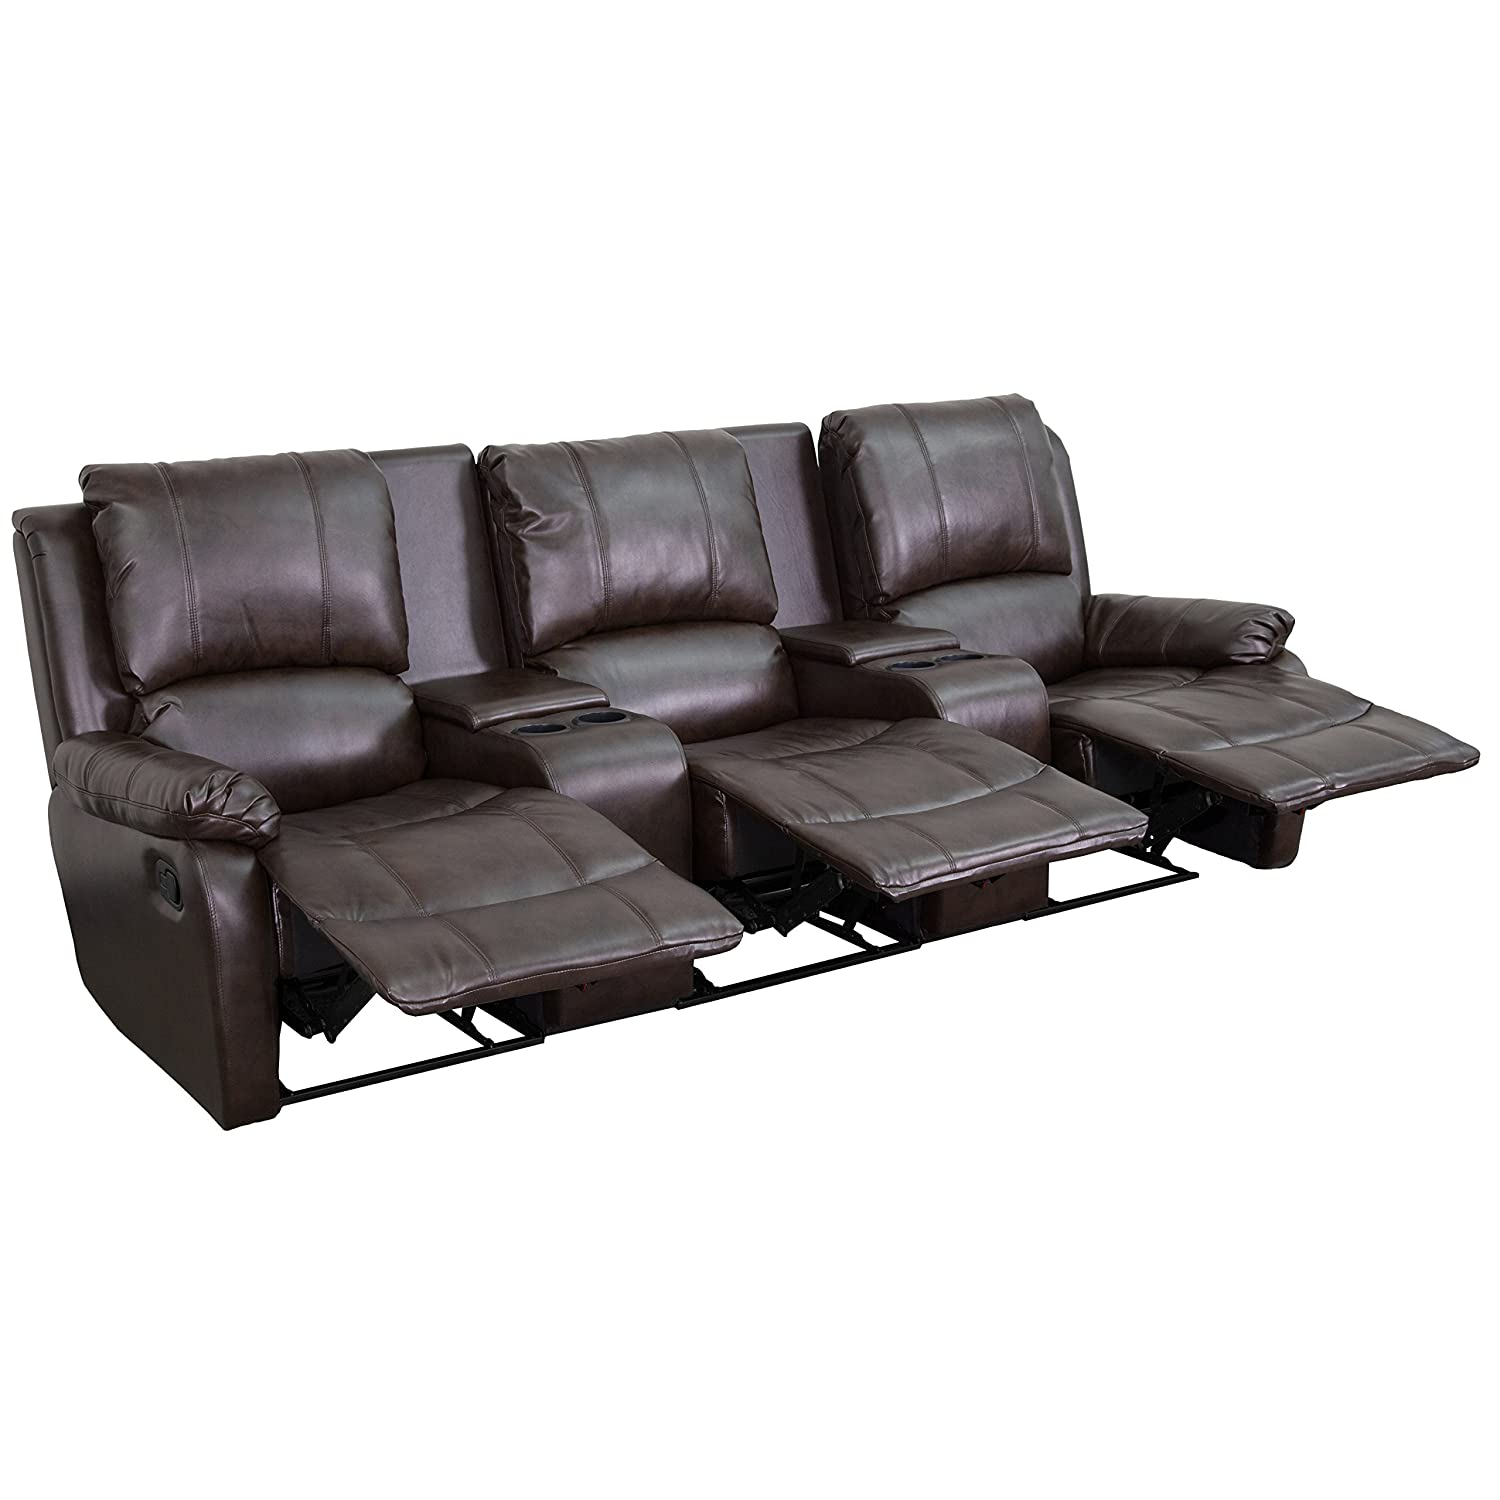 Gentil Amazon.com: Flash Furniture Allure Series 3 Seat Reclining Pillow Back  Brown Leather Theater Seating Unit With Cup Holders: Kitchen U0026 Dining